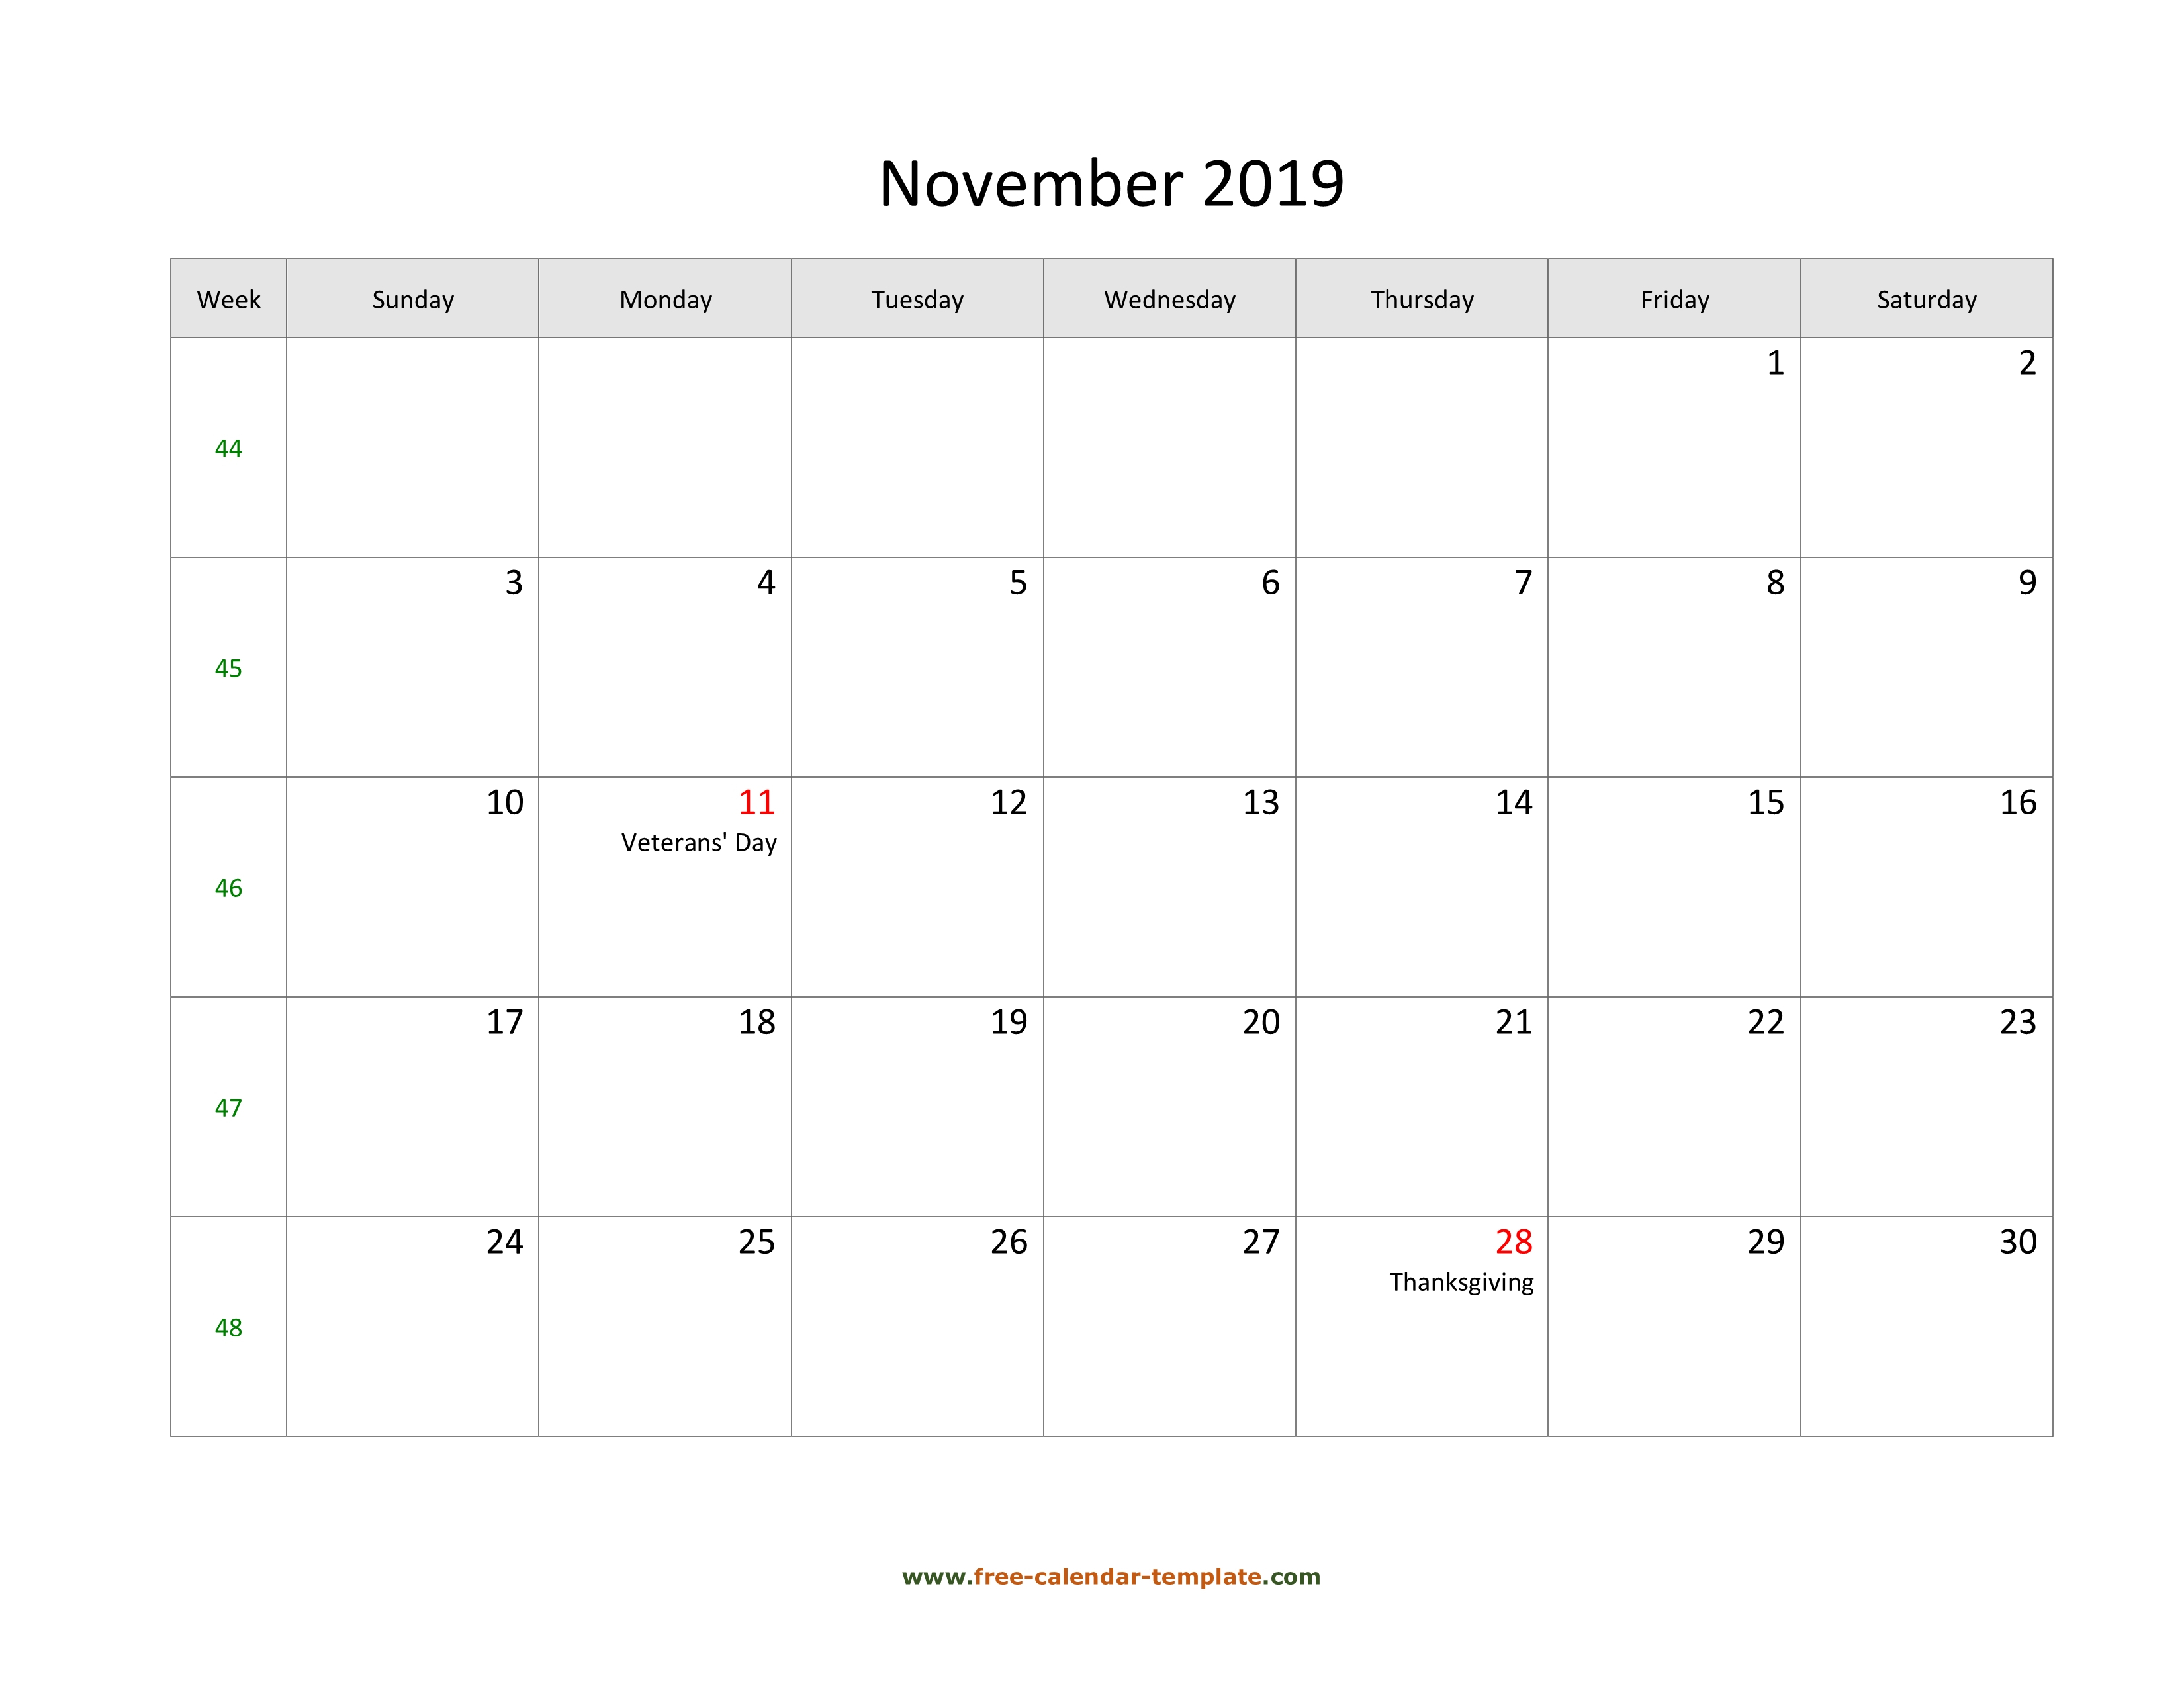 Free 2019 Calendar Blank November Template (Horizontal regarding Large Grid Calendar Printable